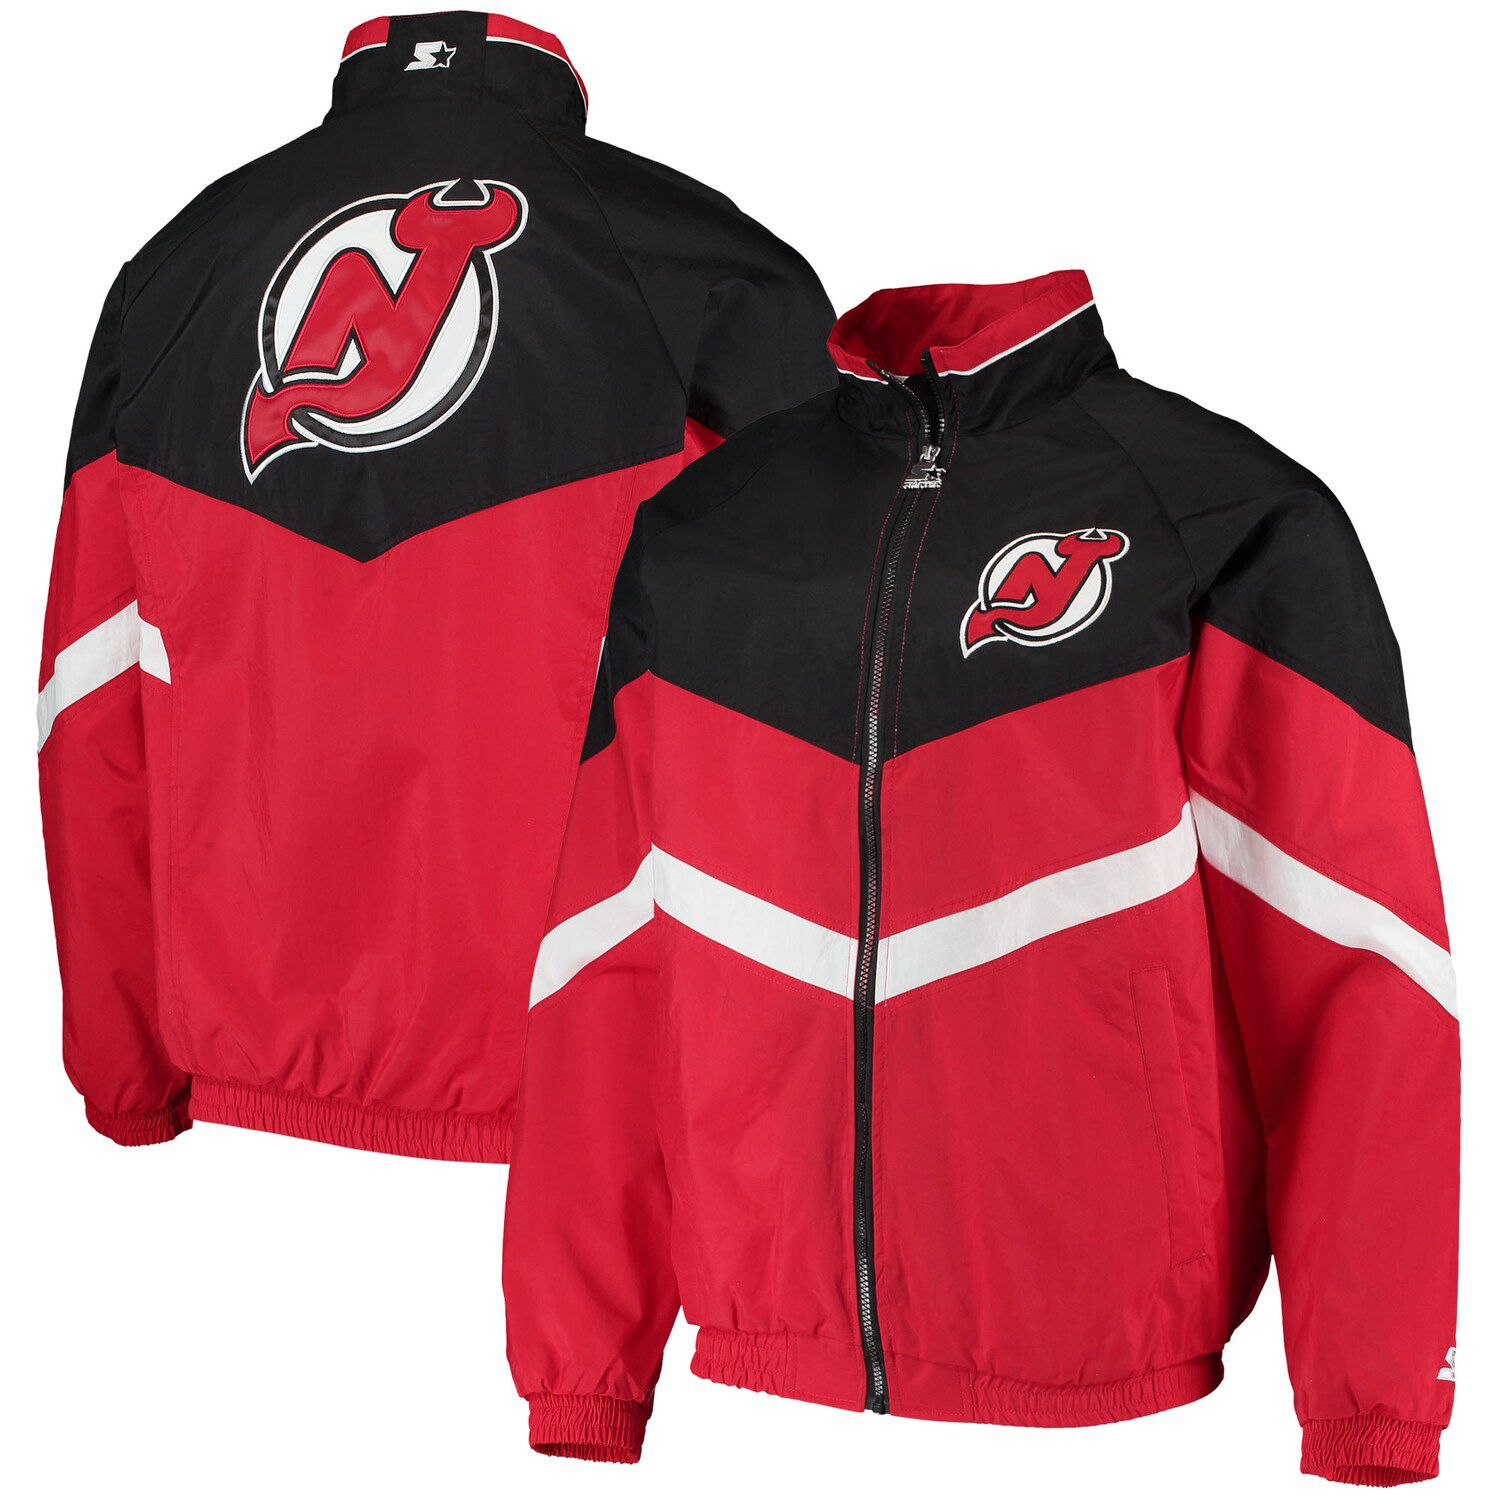 new jersey devils jacket